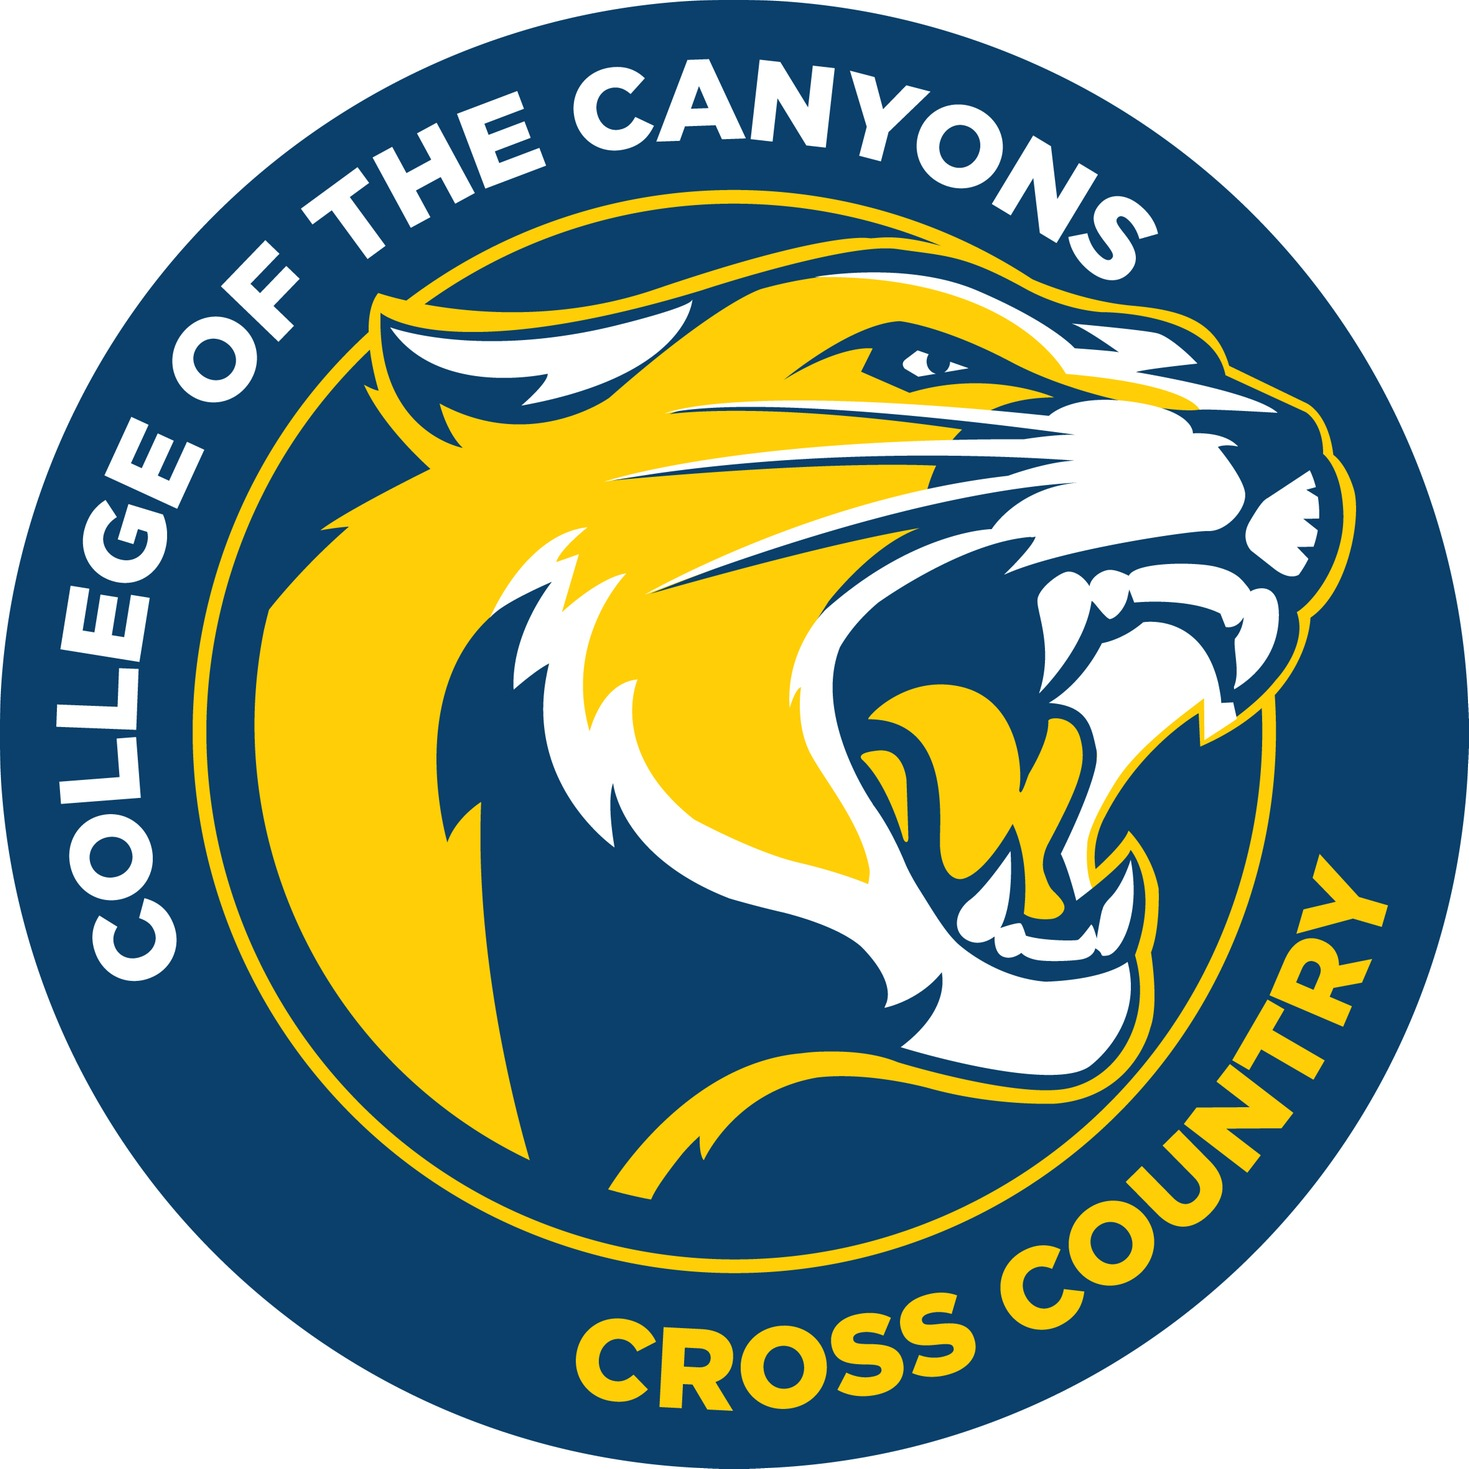 College of the Canyons cross country logo.